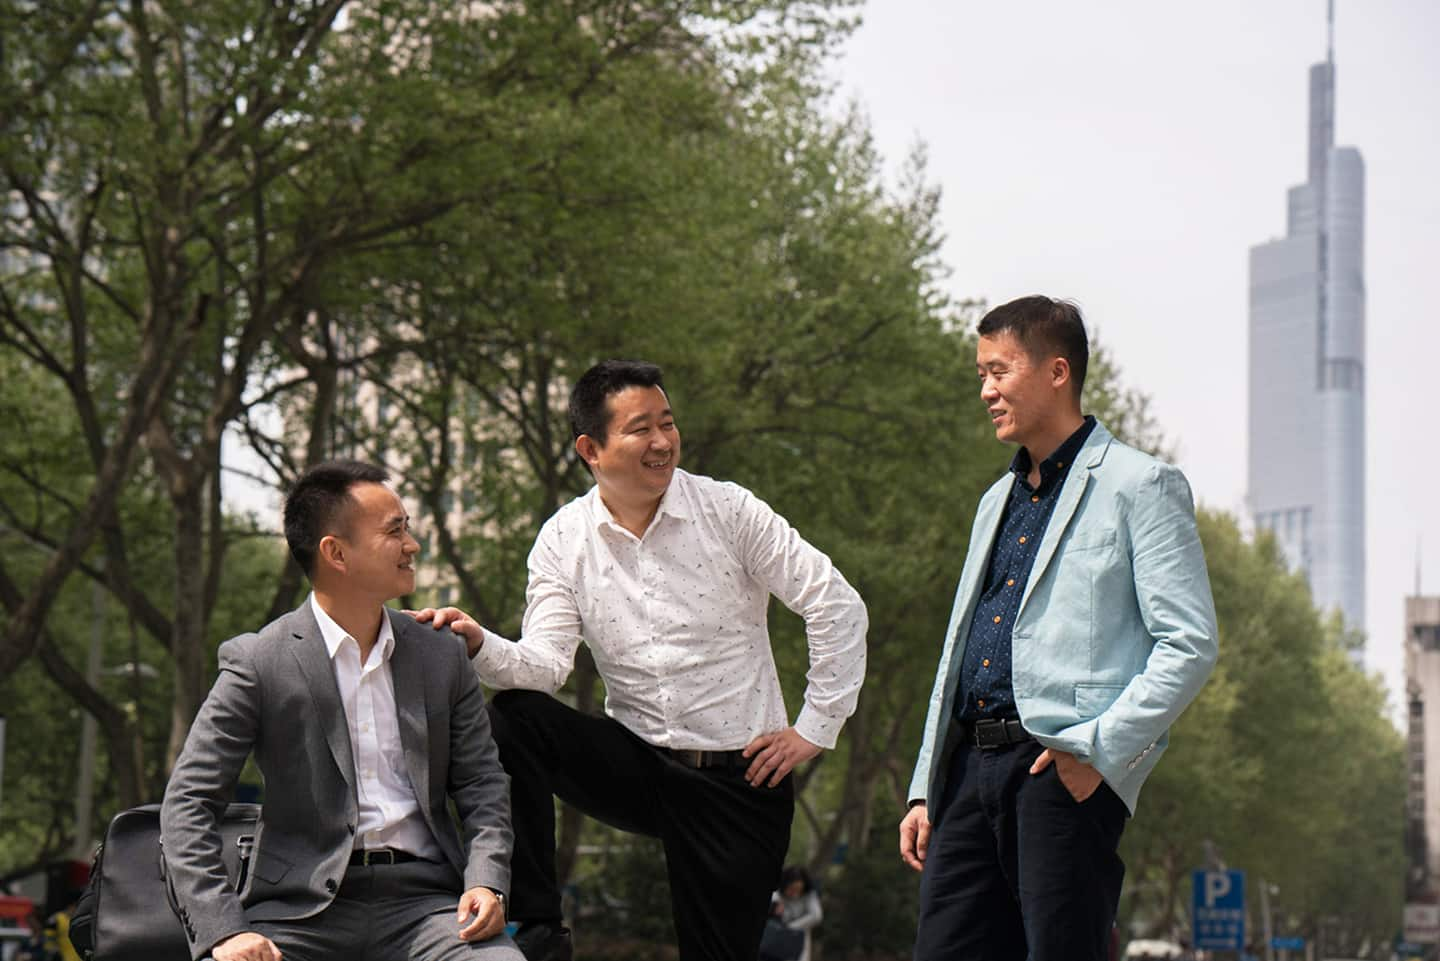 Changing life in Nanjing - Group of men